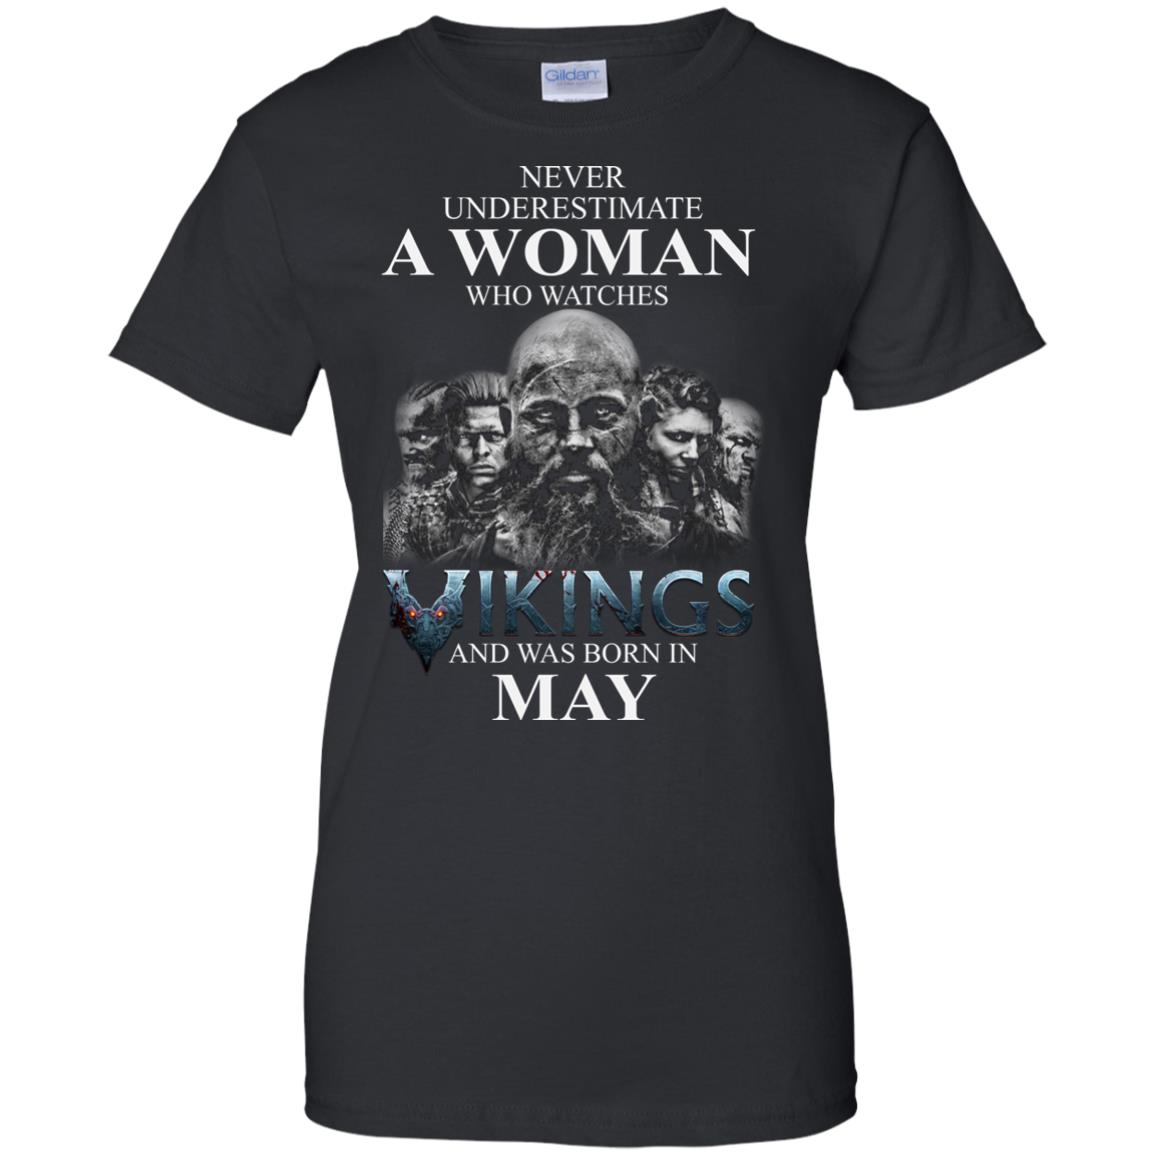 image 1313 - Never Underestimate A woman who watches Vikings and was born in May shirt